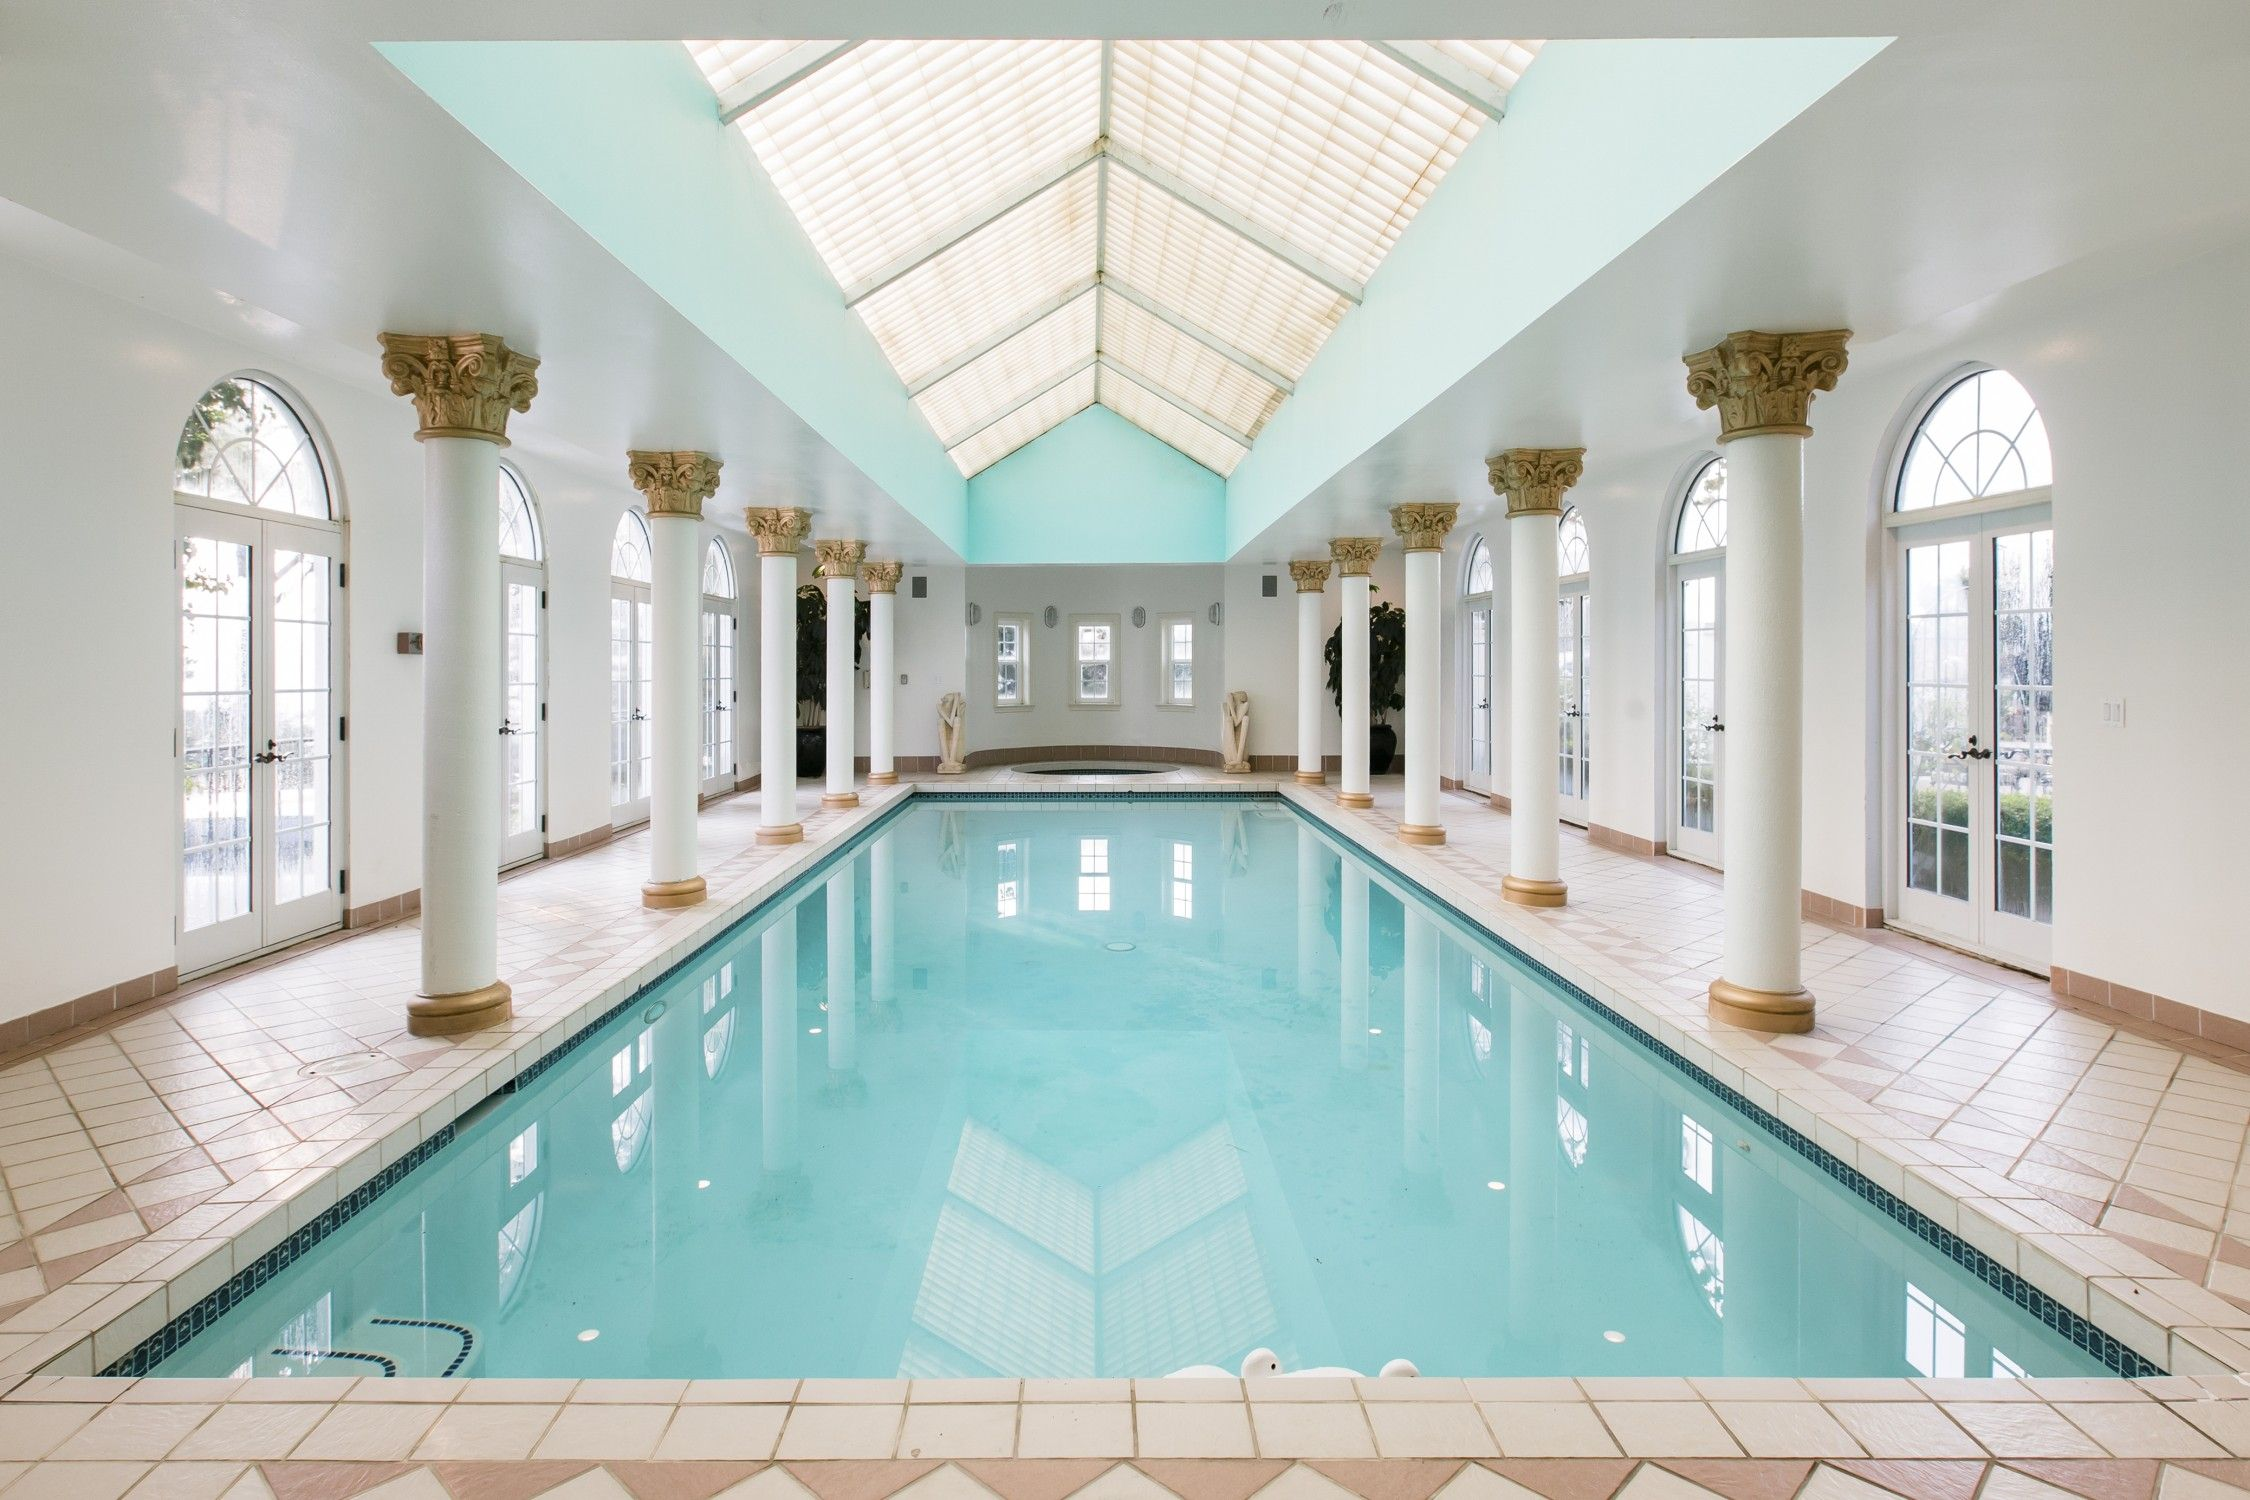 Palatial Estate With Views Gardens Indoor Pool Houses For Rent In Belvedere Tiburon California U With Images Indoor Pool House Pool Houses Renting A House